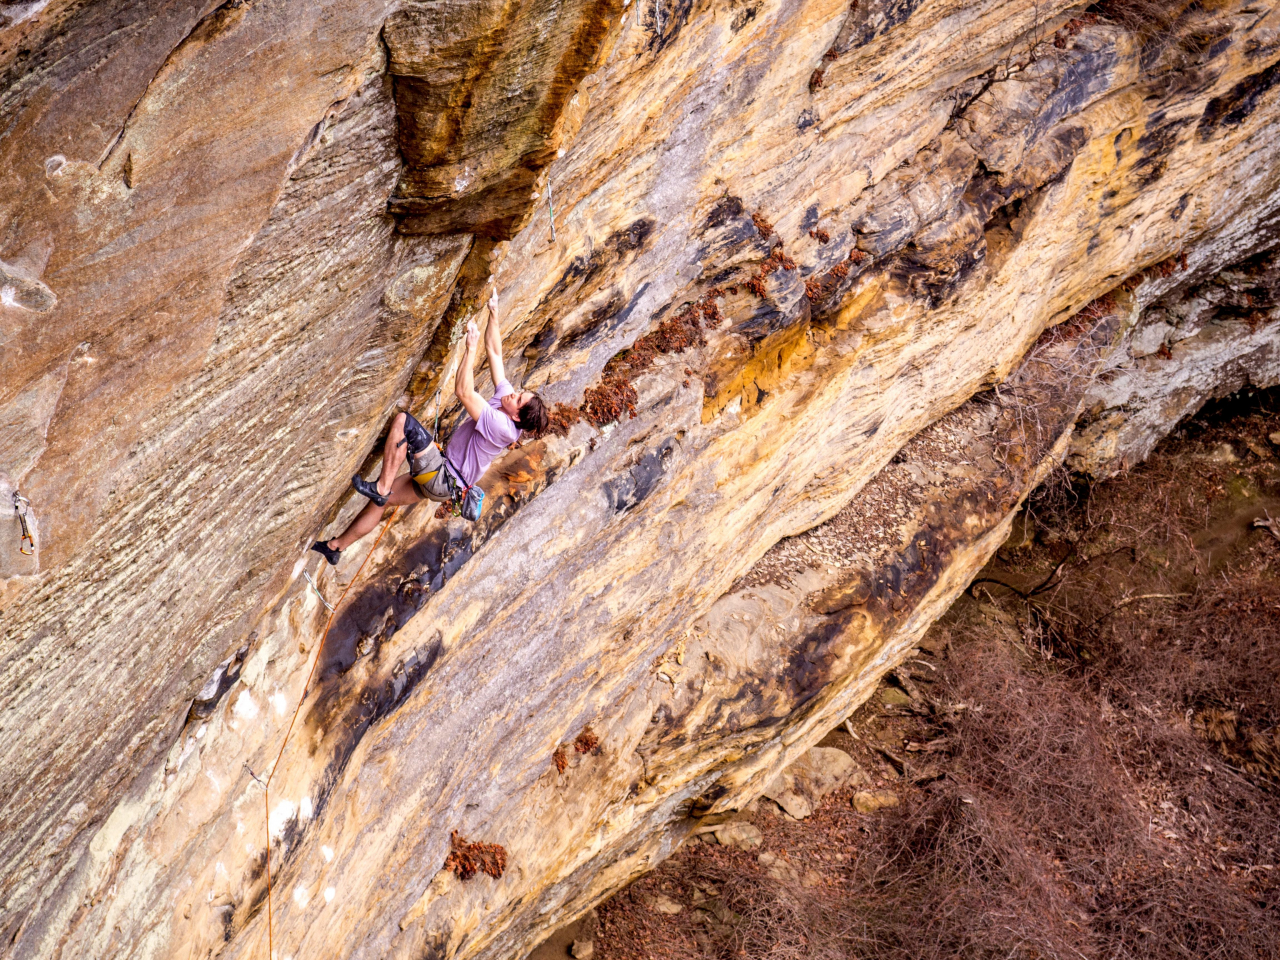 A picture from The Red River Gorge (RRG) by Felix Bourassa-Moreau